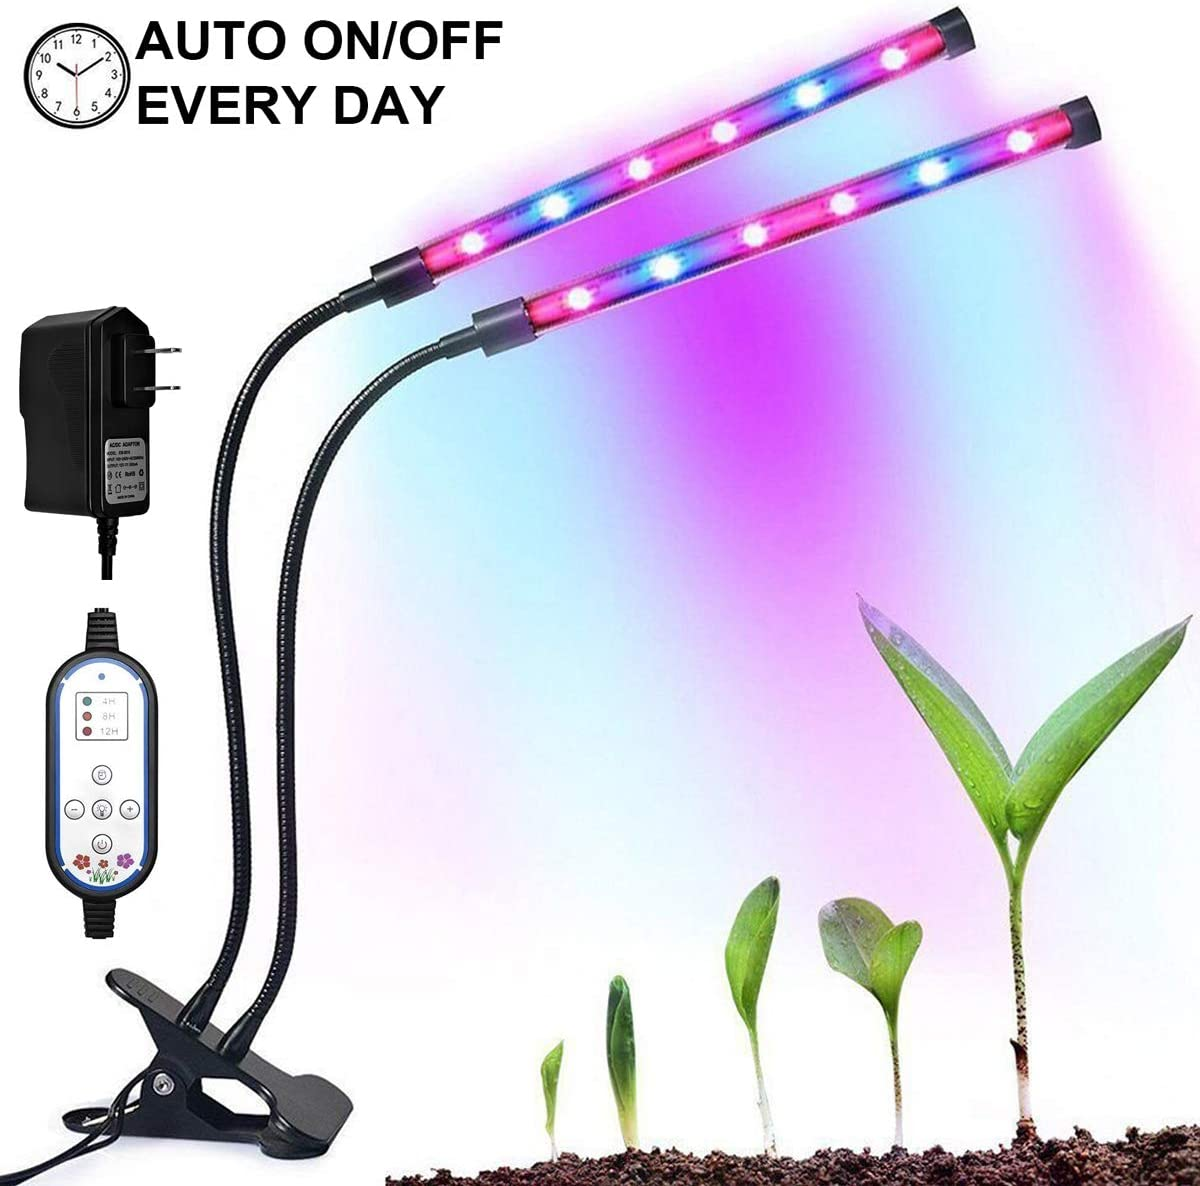 Dual-lamp Grow Light, Auto On Off 4H 8H 12H Cycle Timing Plant Lights 8 Levels with Adjustable 360 Degree Flexible Gooseneck for Indoor Plants Potted Tent Hydroponics Gardening Seedlings Growing